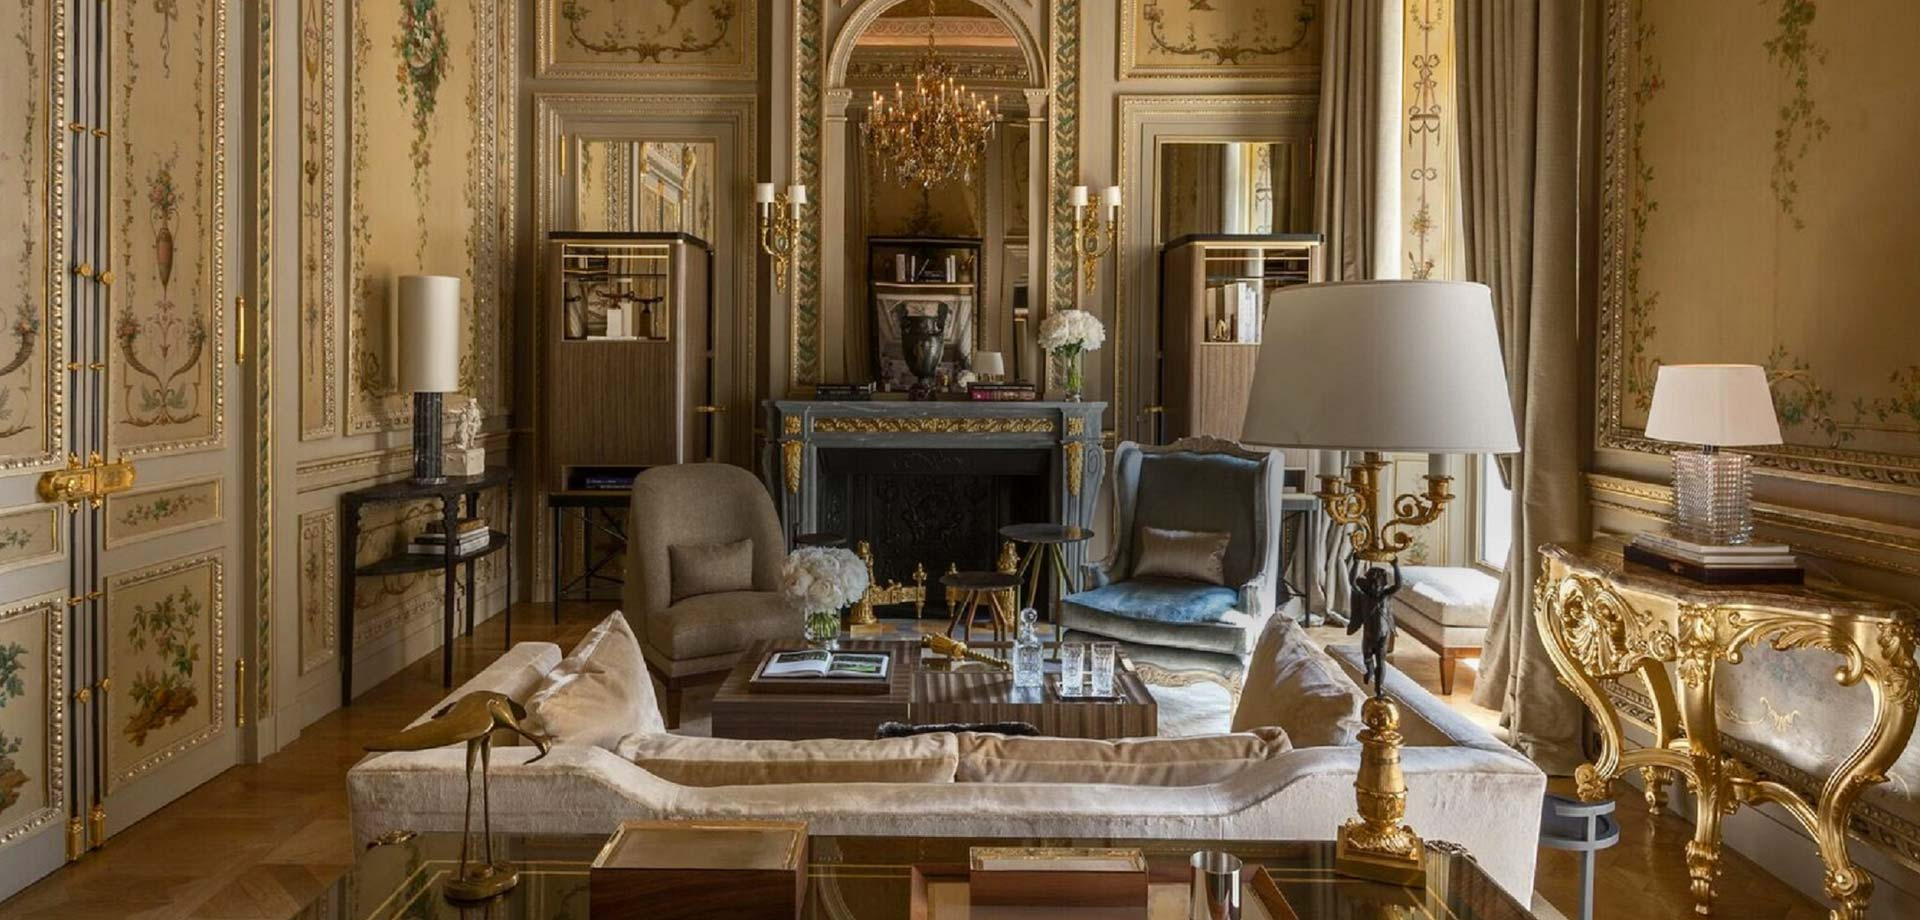 The best boutique hotels luxury hotels tablet hotels for Paris boutiques hotels